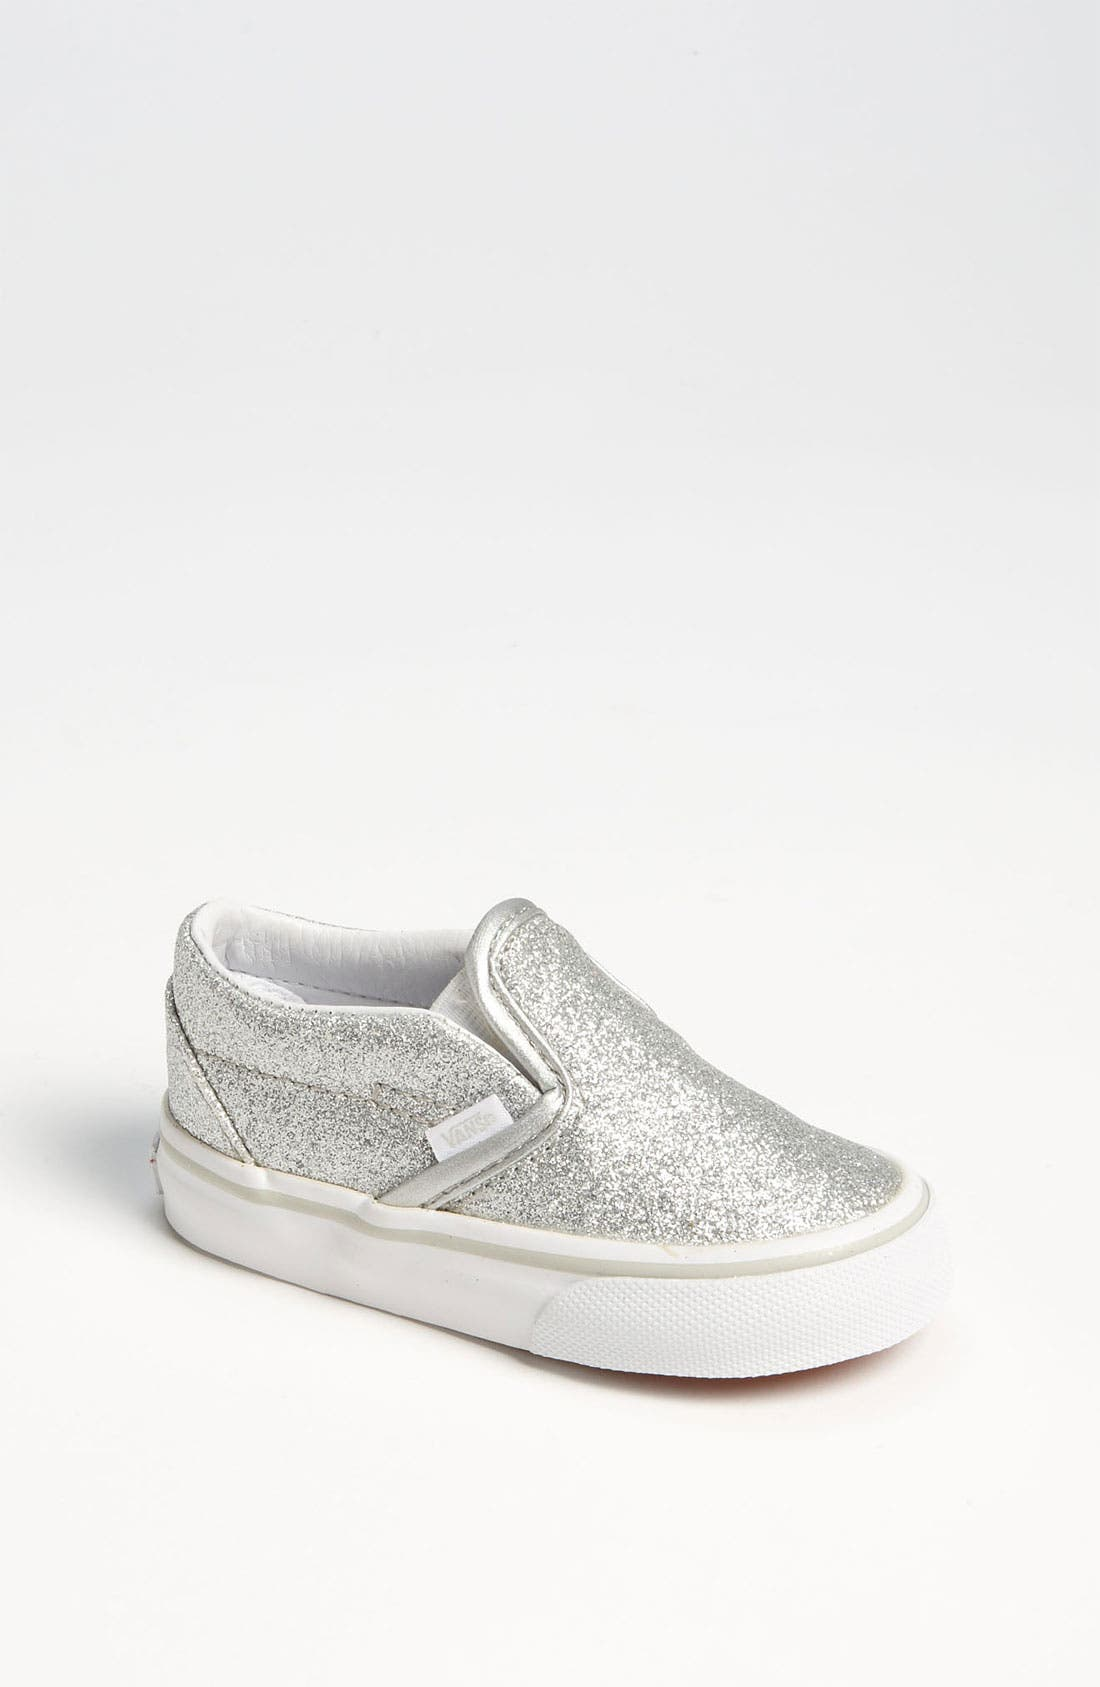 Alternate Image 1 Selected - Vans 'Classic - Glitter' Slip-On (Baby, Walker & Toddler)